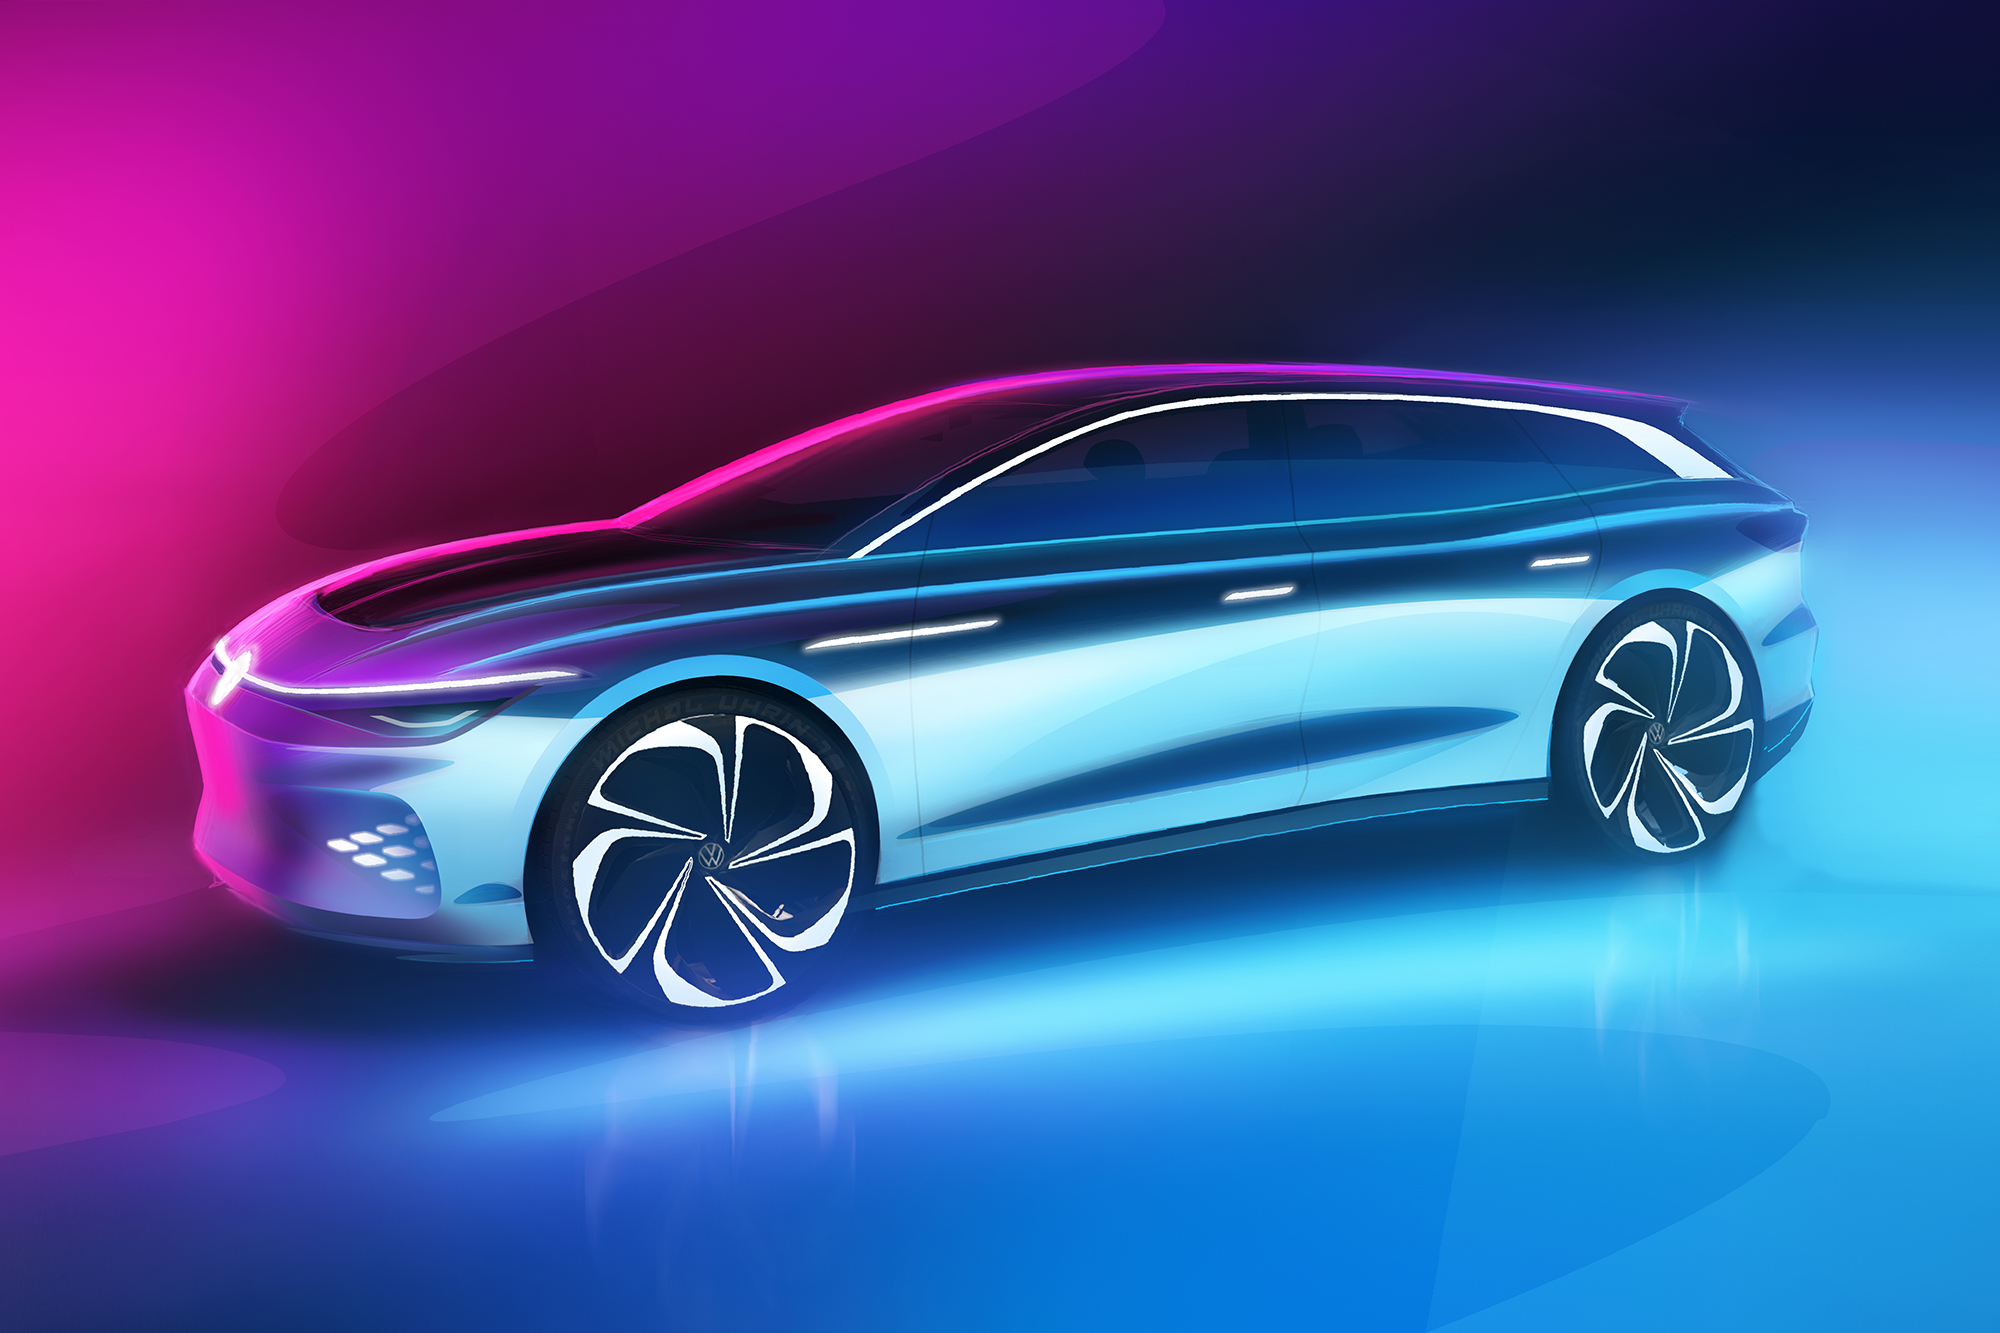 VW ID. Space Vizzion Concept: 'Crossover of Tomorrow' Is Truly a Volks-Wagon